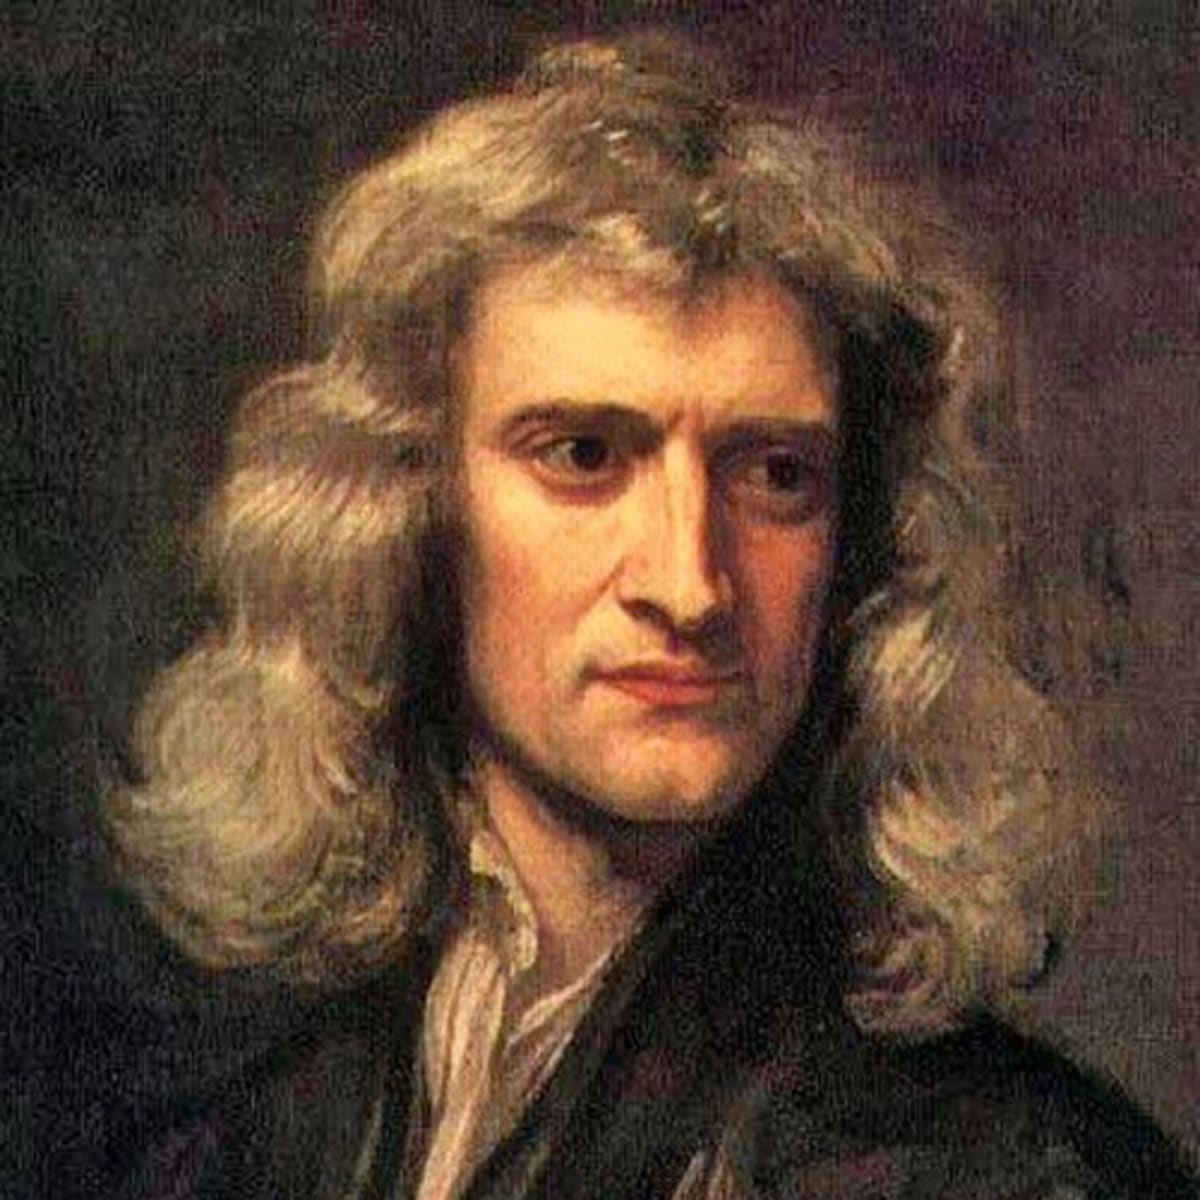 Isaac newton research paper outline essays about hip hop dance